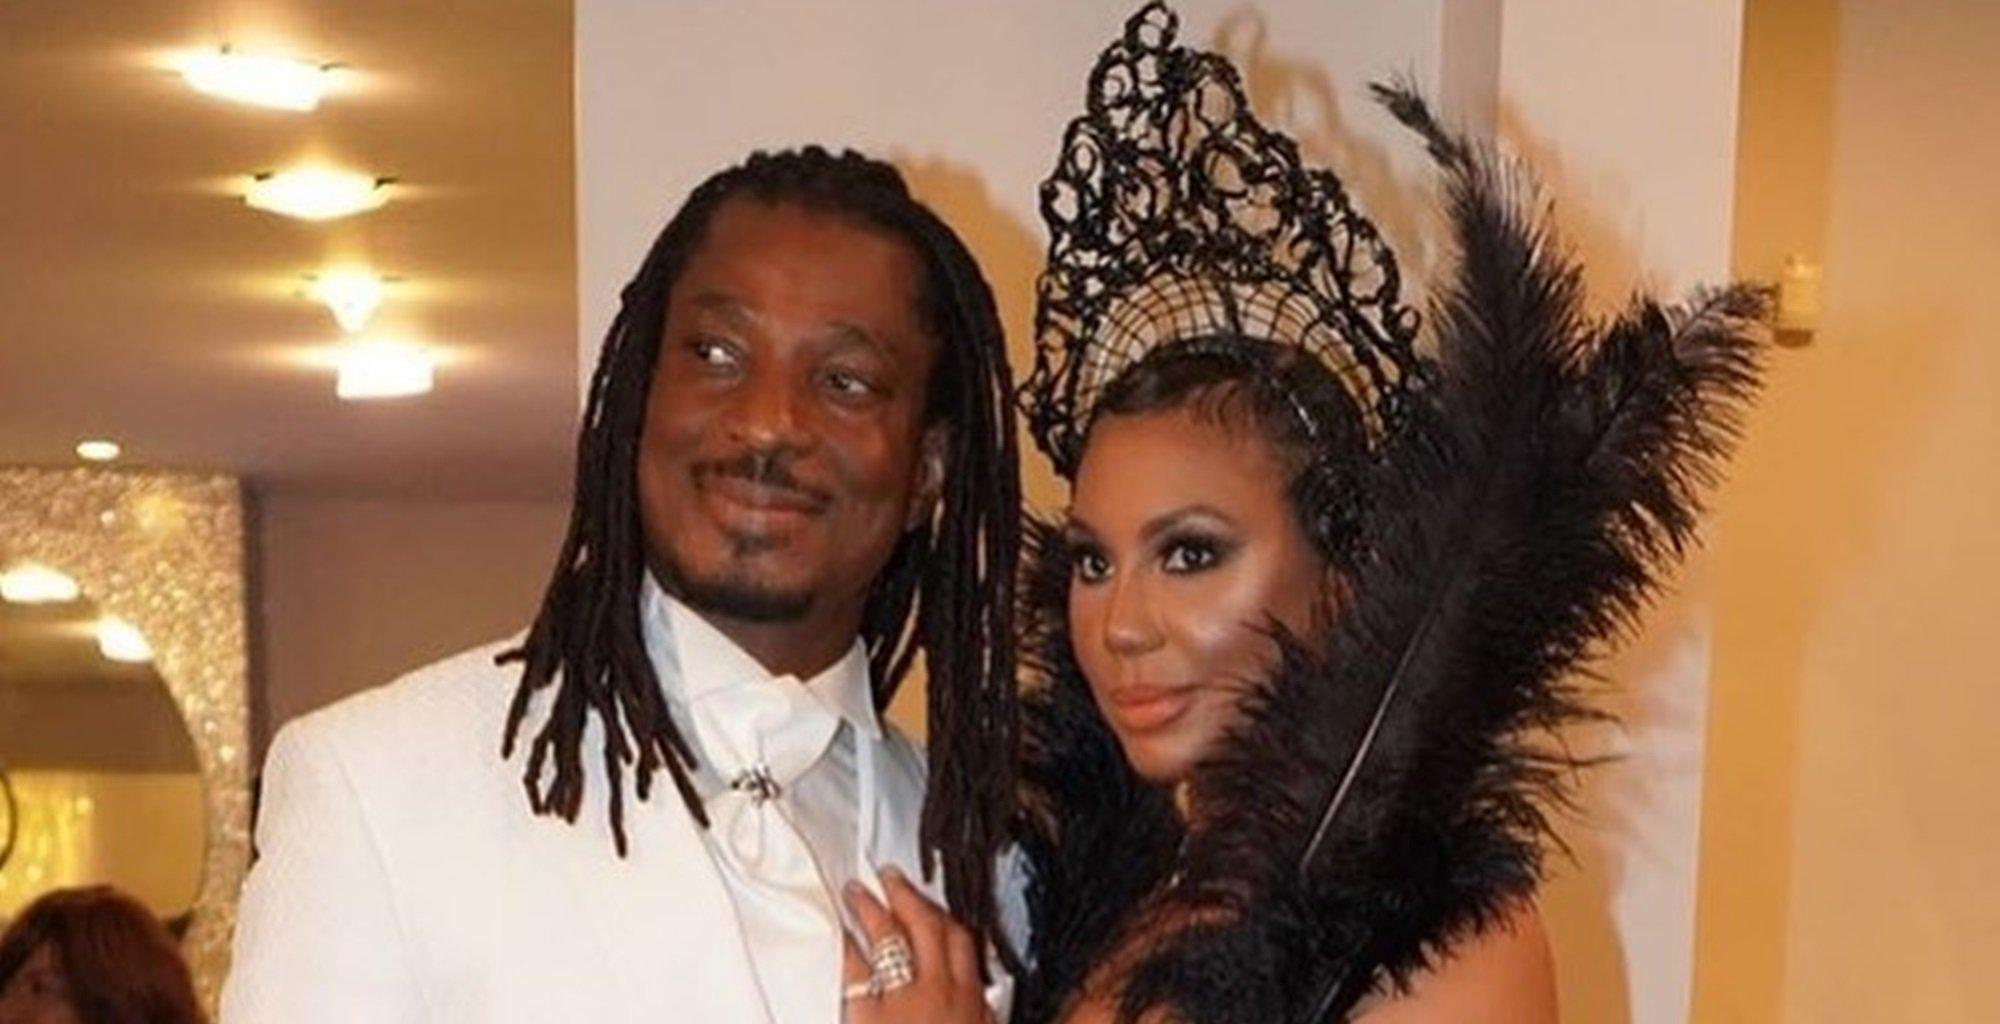 David Adefeso Has The Time Of His Life With Tamar Braxton In Their Dreamy Tropical Caribbean Resort